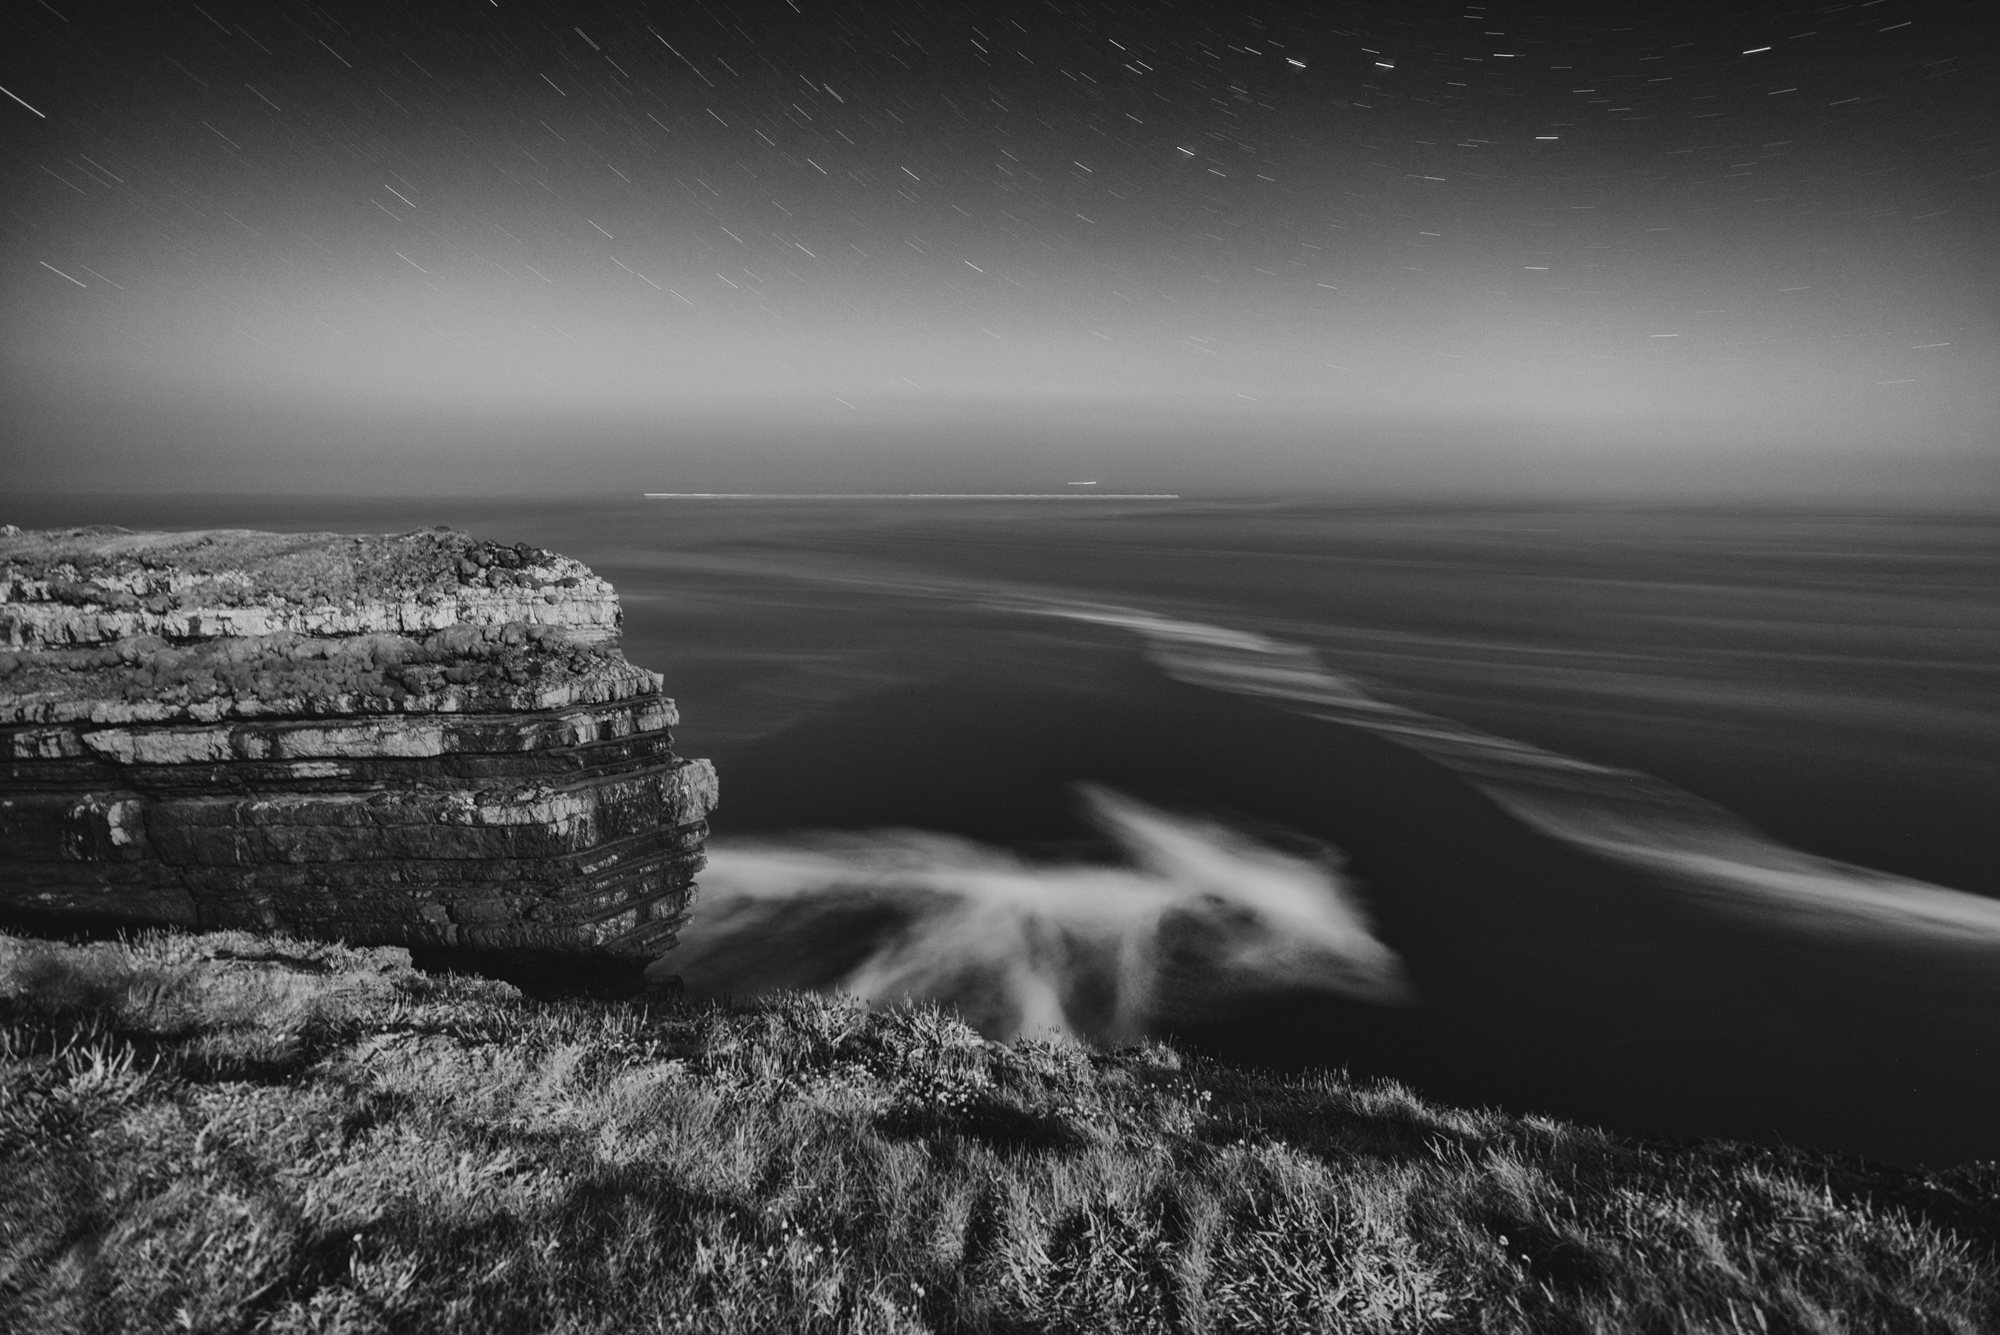 Looking north by northwest from the Loop Head Peninsula two days after a full moon.Prints available for purchase - contact  Matt@matthillart.com